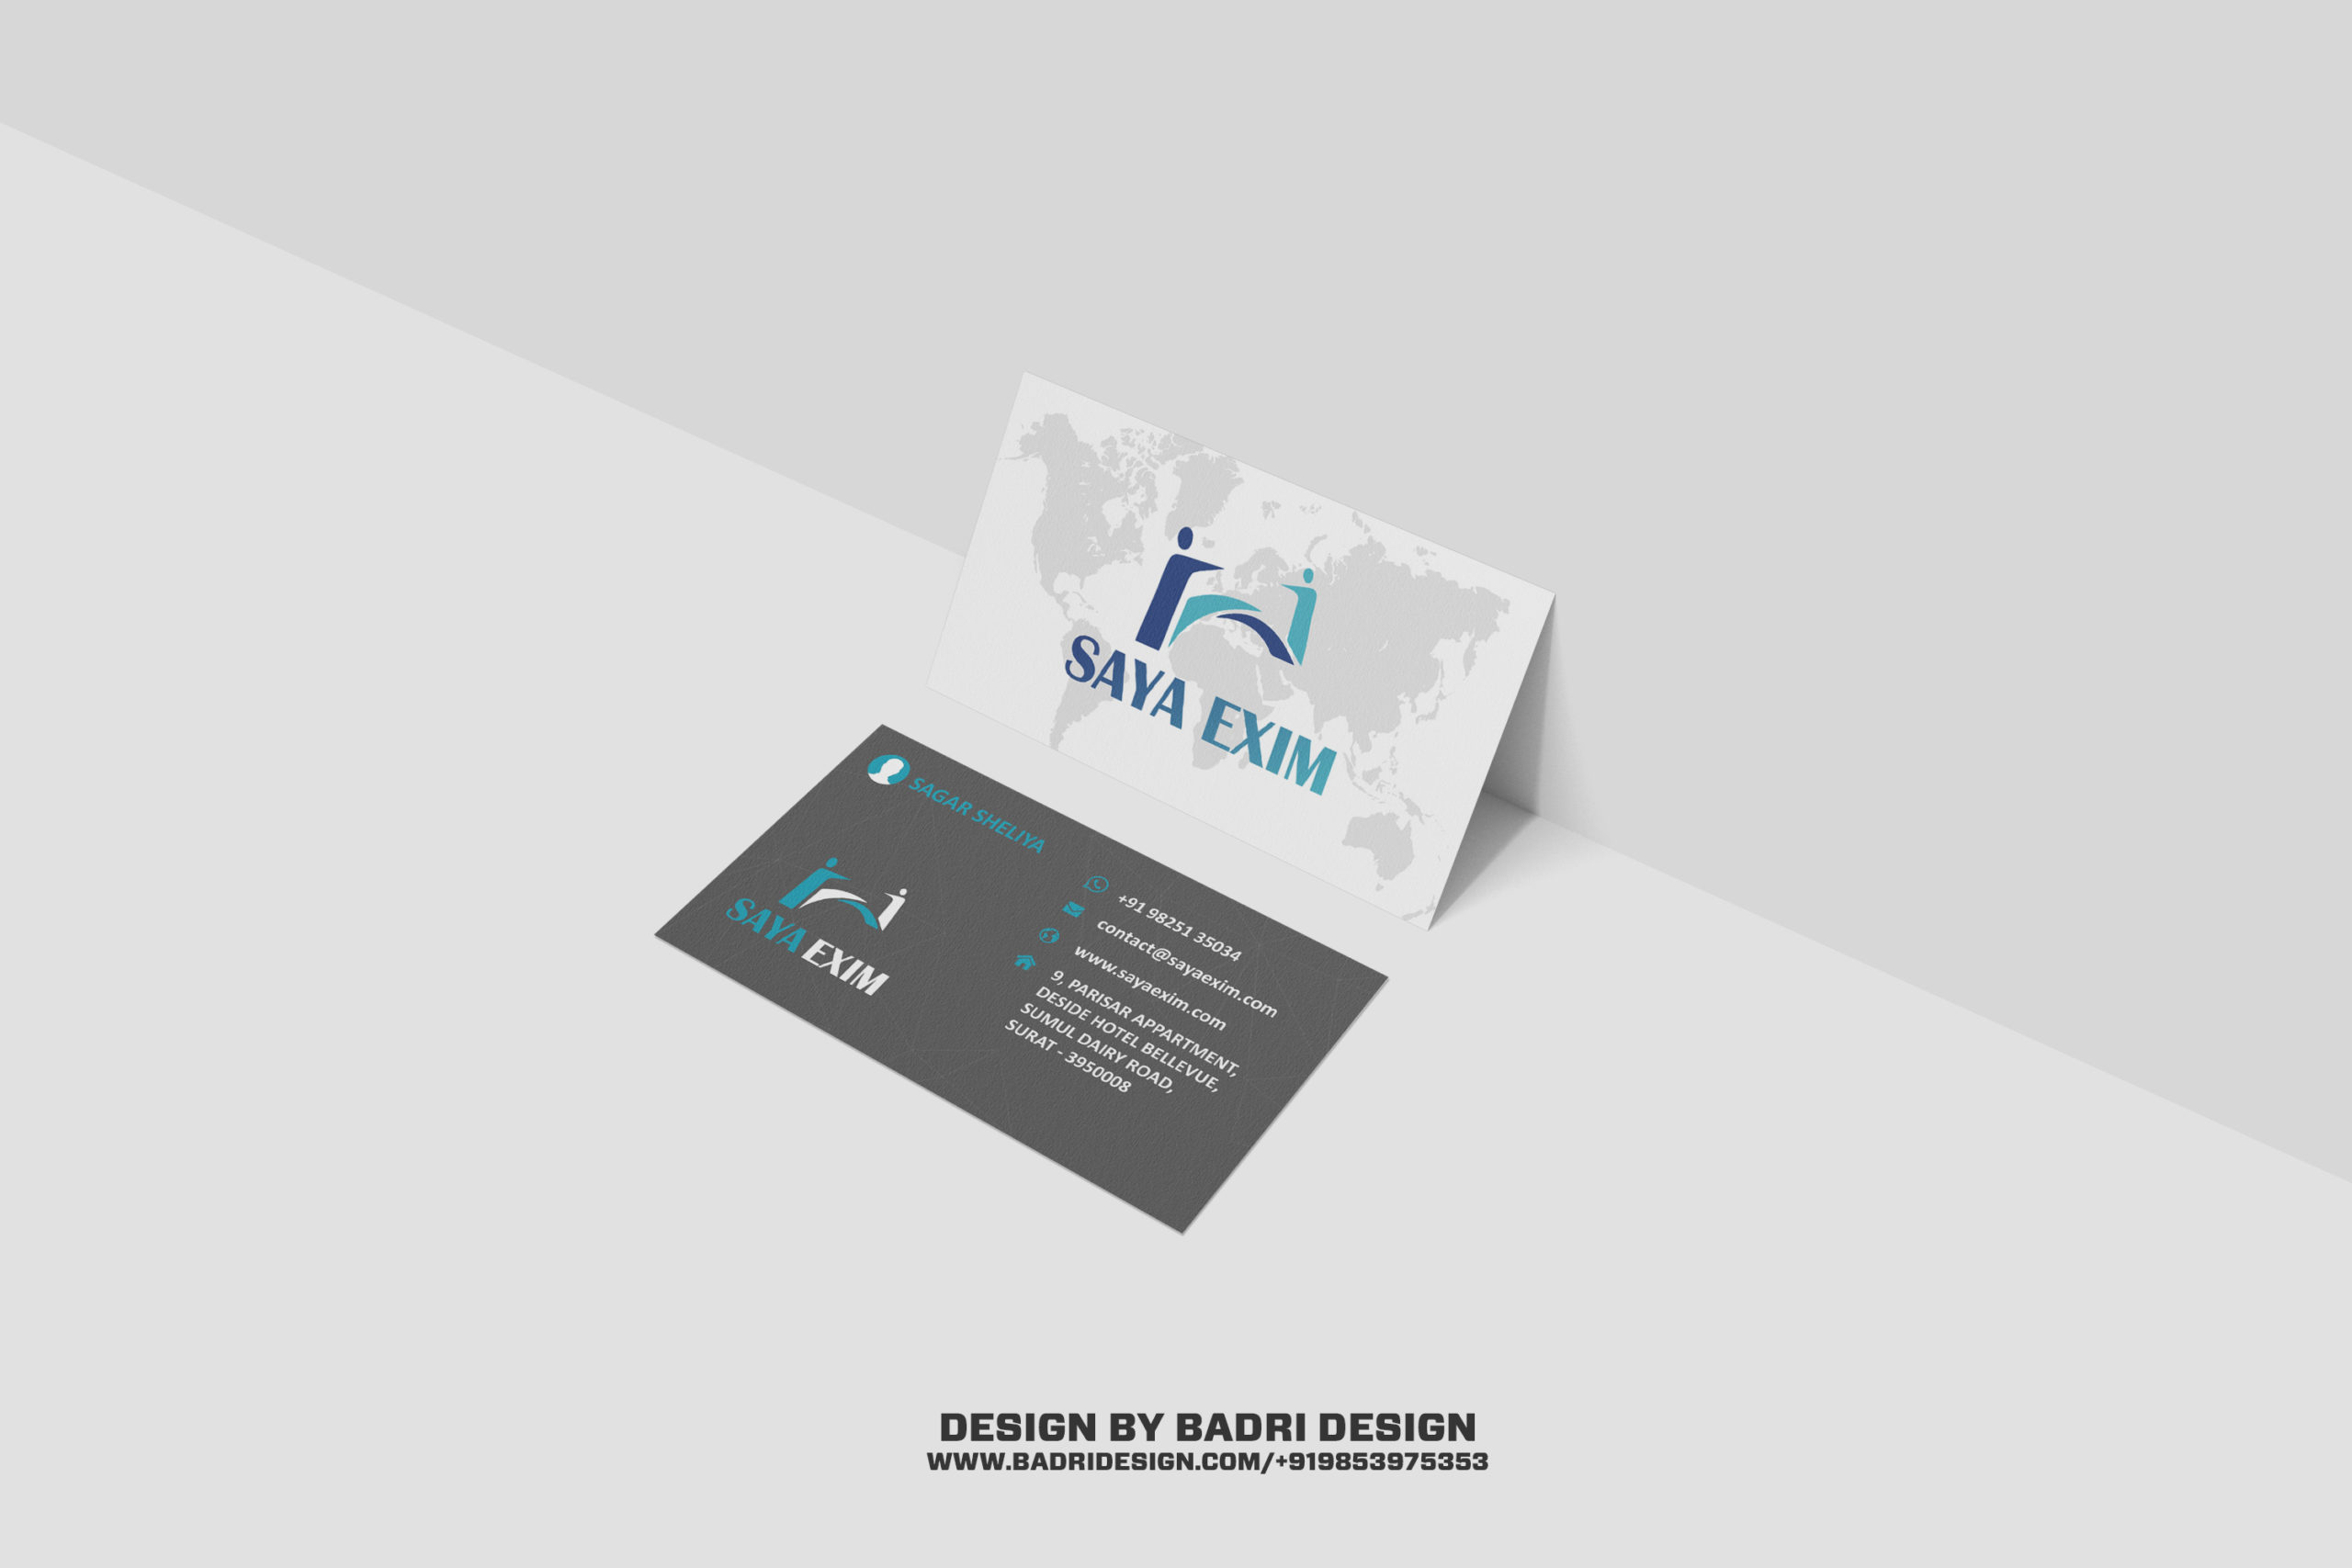 Saya Exim creative world business design Badri design